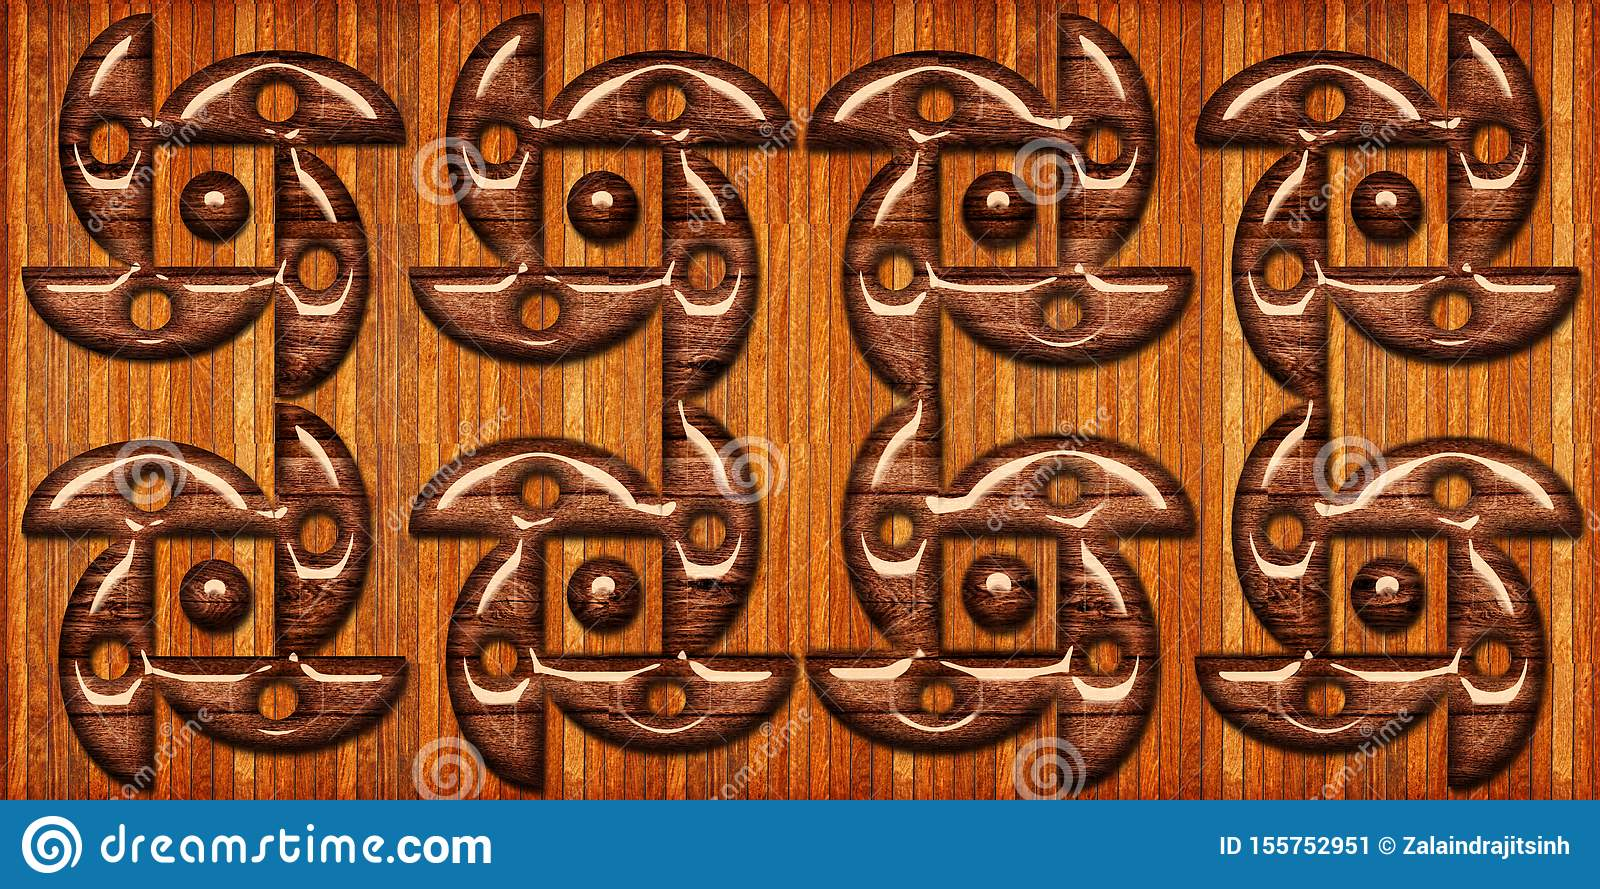 Wooden tiles pattern. wooden geometric shapes, wooden floor tile. High quality seamless realistic texture. For wall, web, bathroom